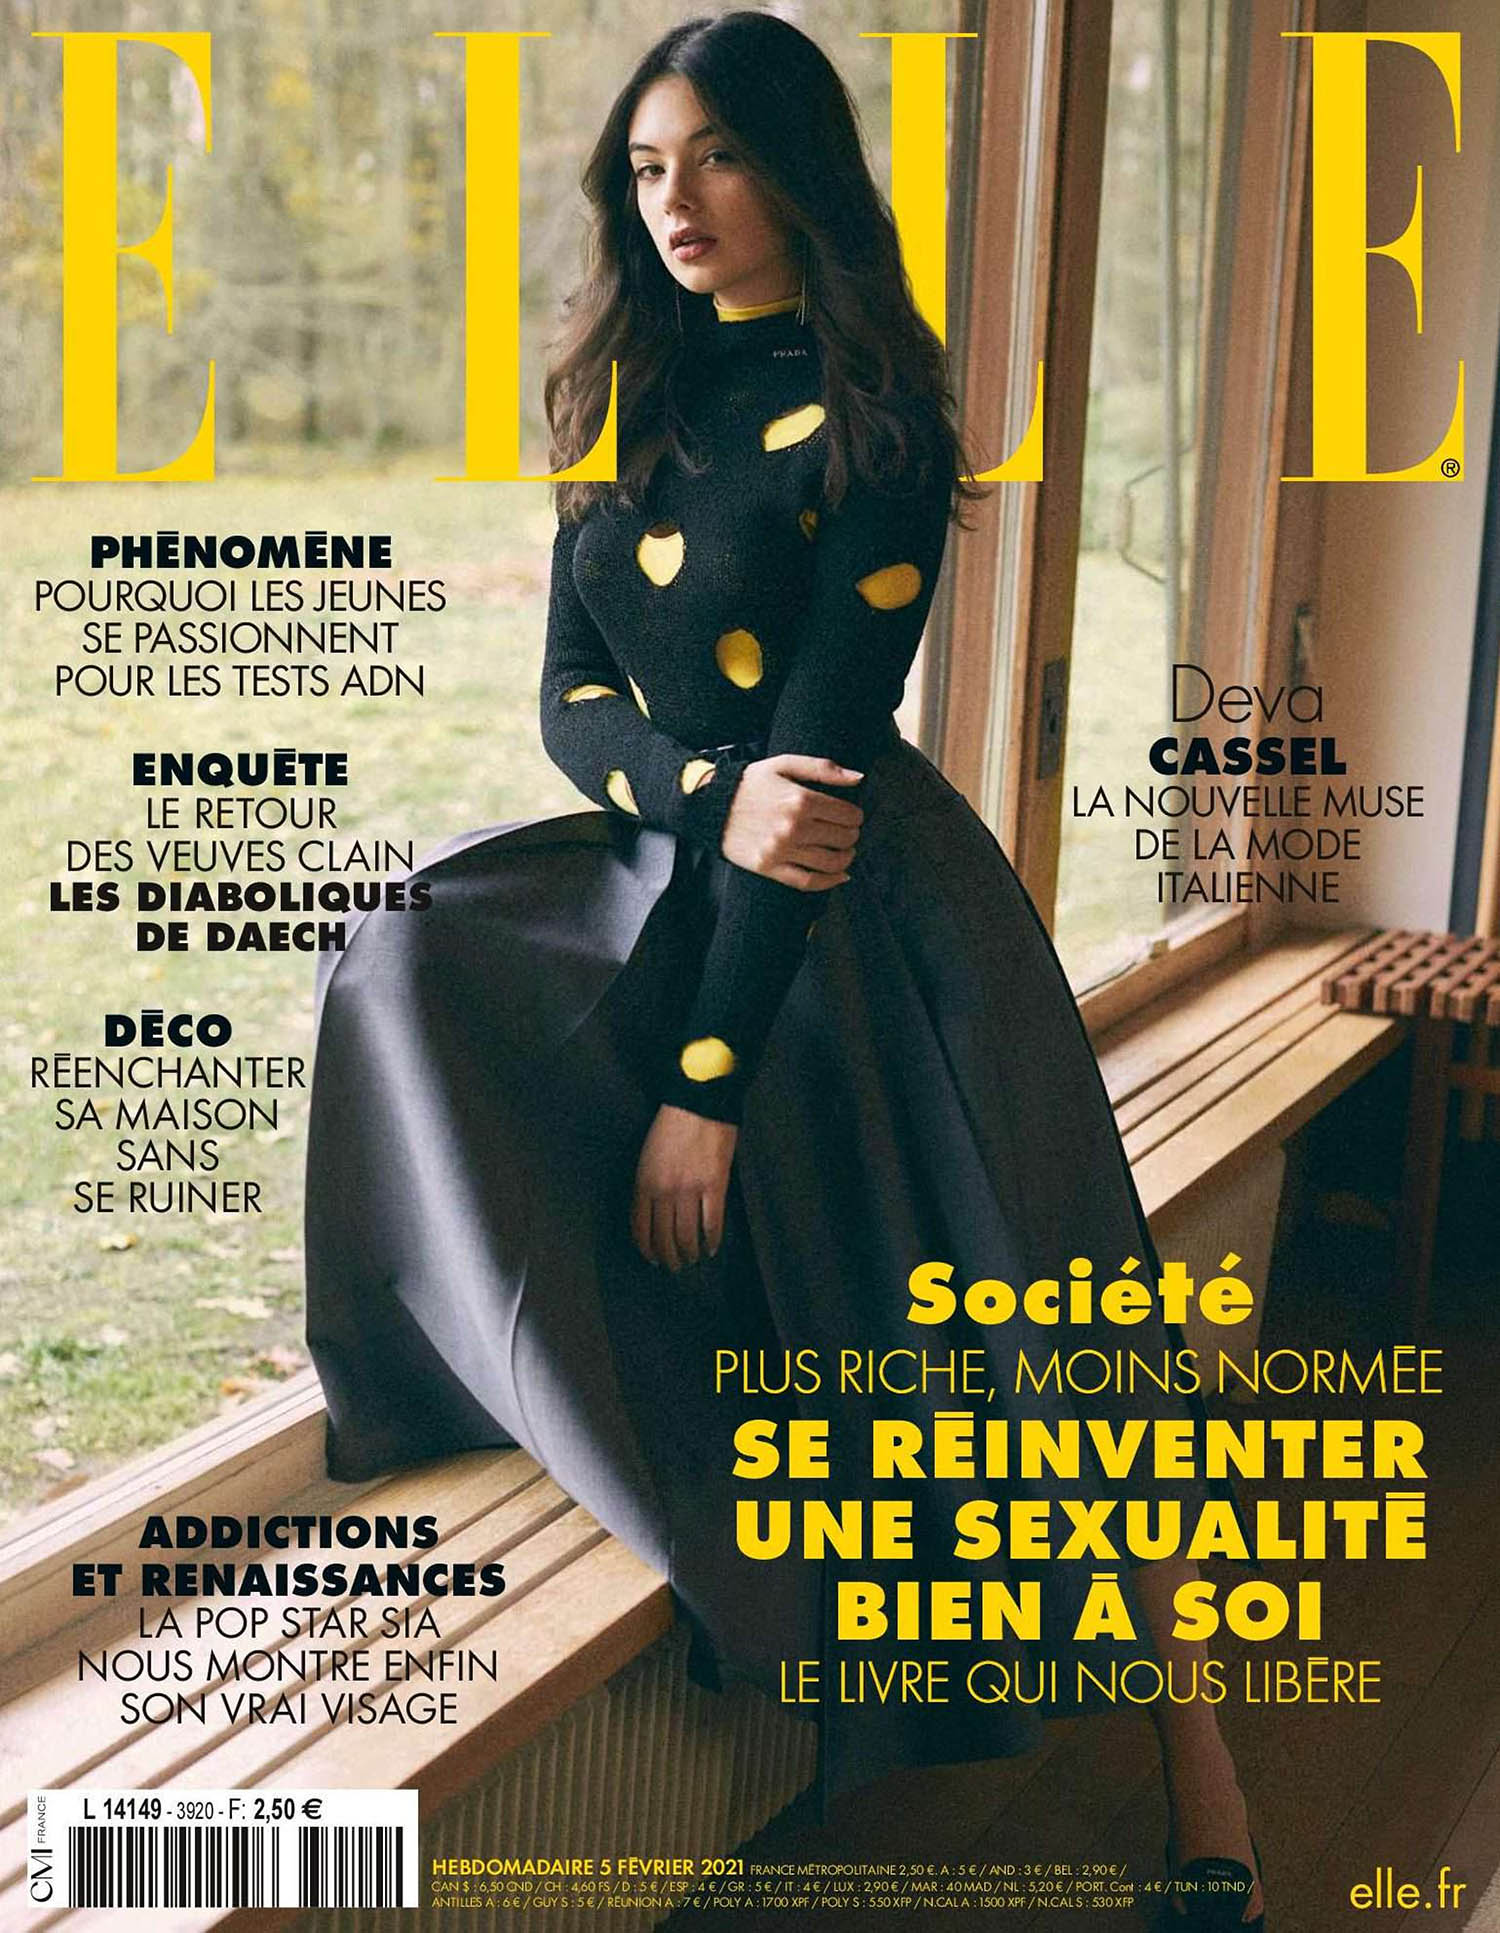 Deva Cassel covers Elle France February 5th, 2021 by Stefano Galuzzi